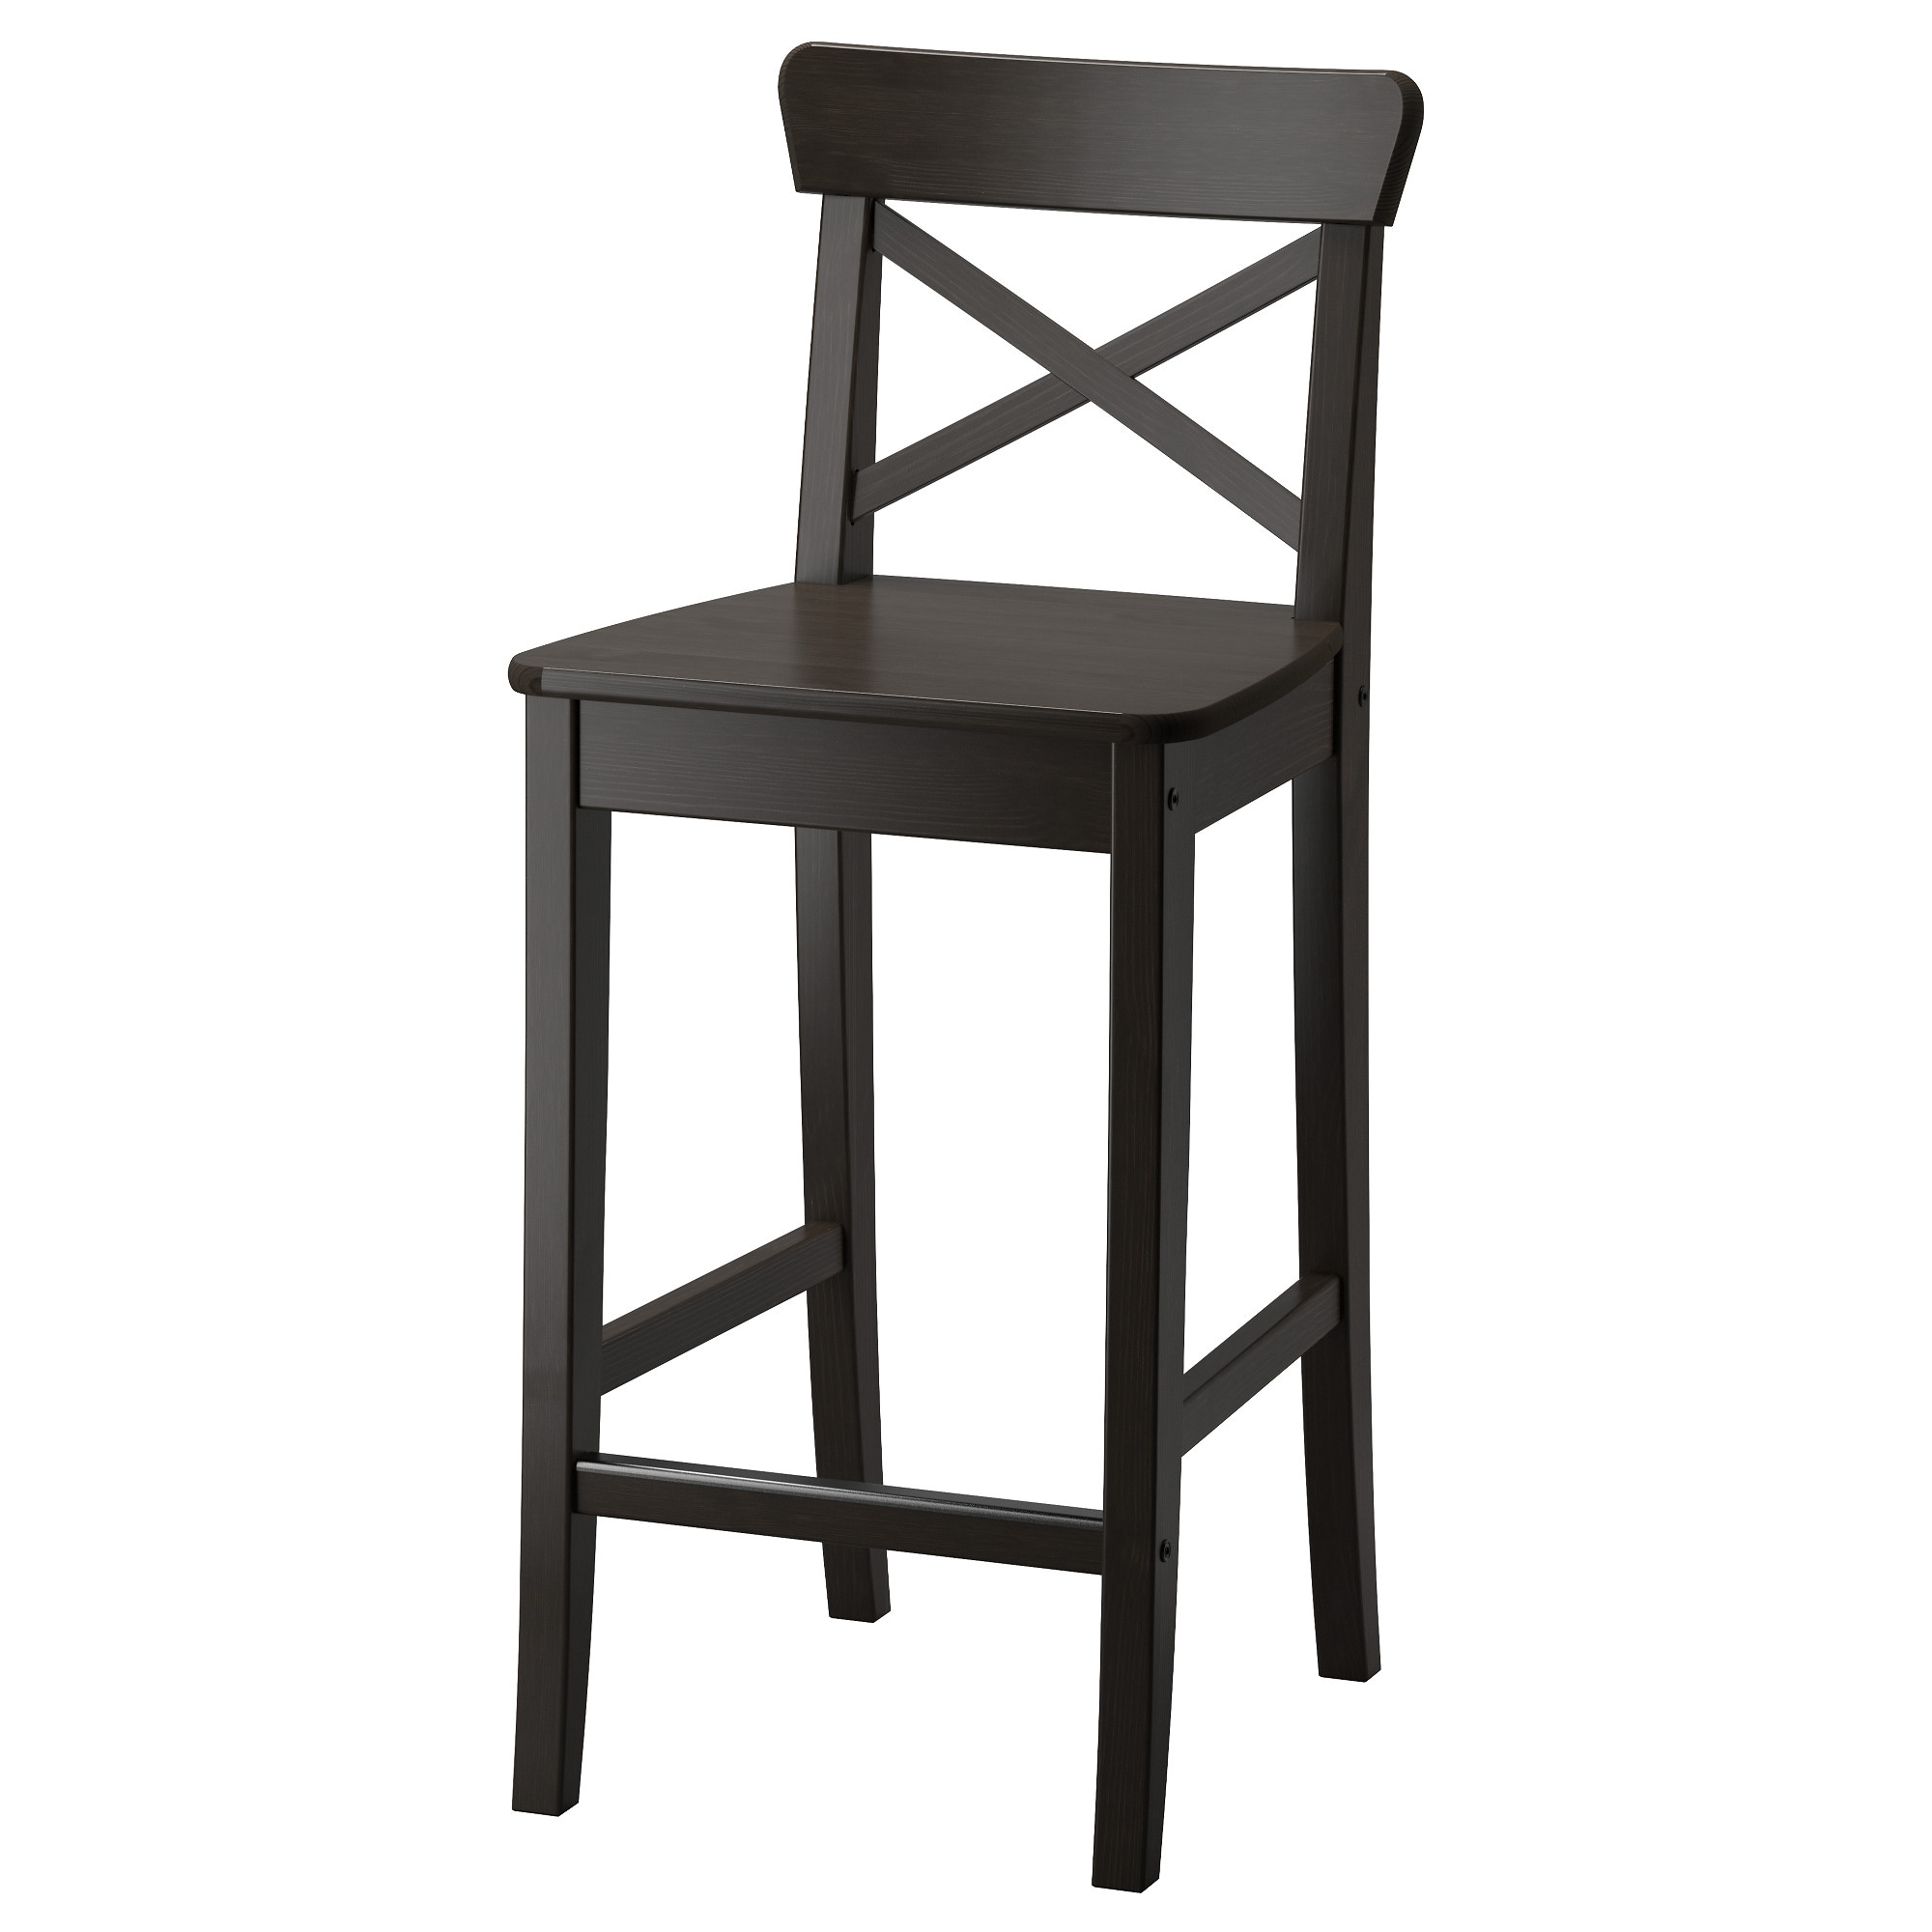 tabouret de bar ikea ingolf. Black Bedroom Furniture Sets. Home Design Ideas